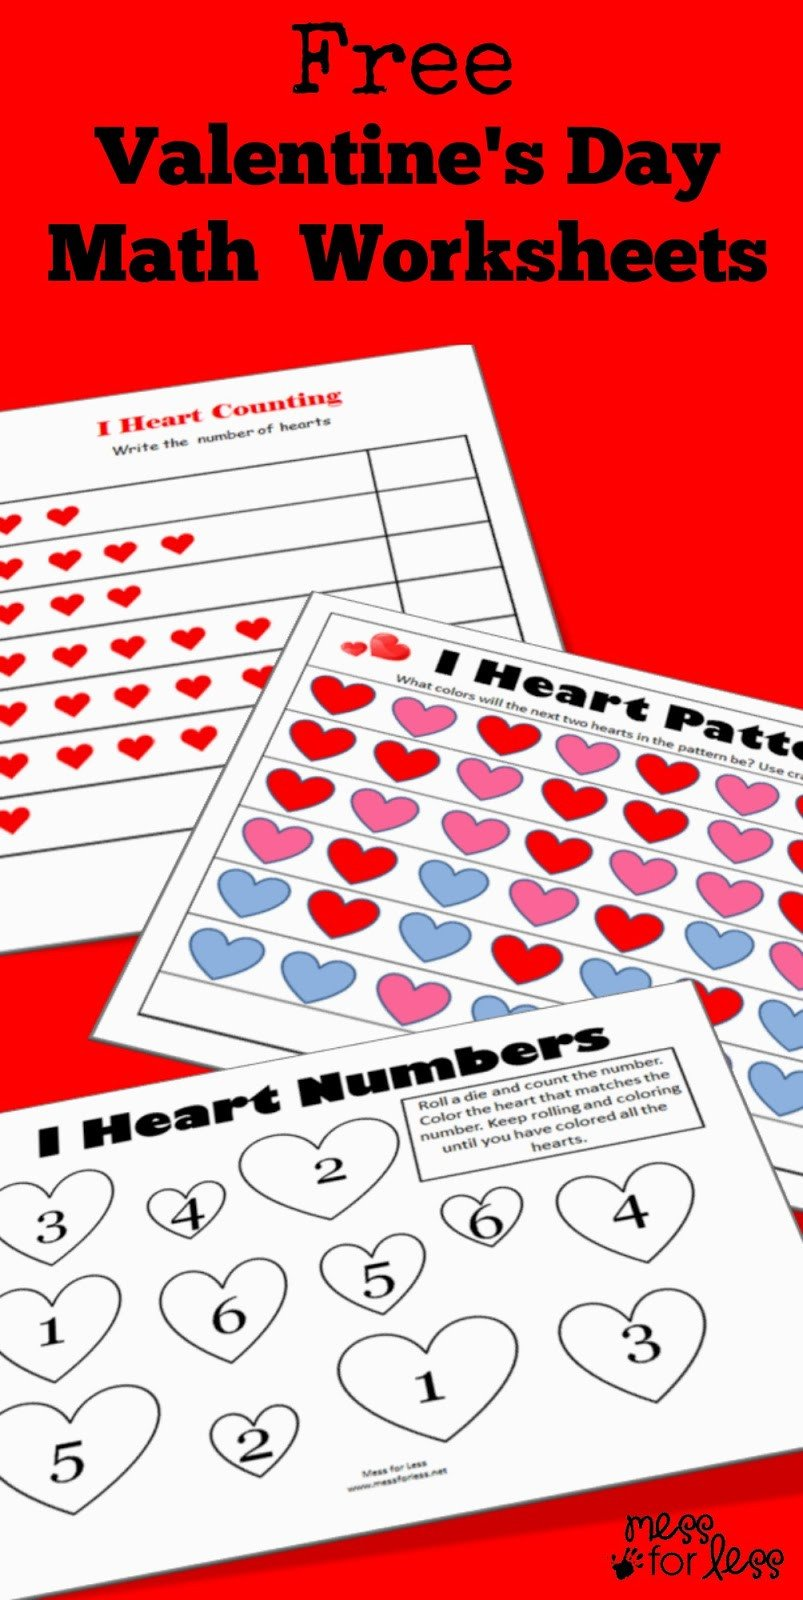 Free Valentine Worksheets for Kindergarten Valentine S Math Kindergarten Worksheets Mess for Less